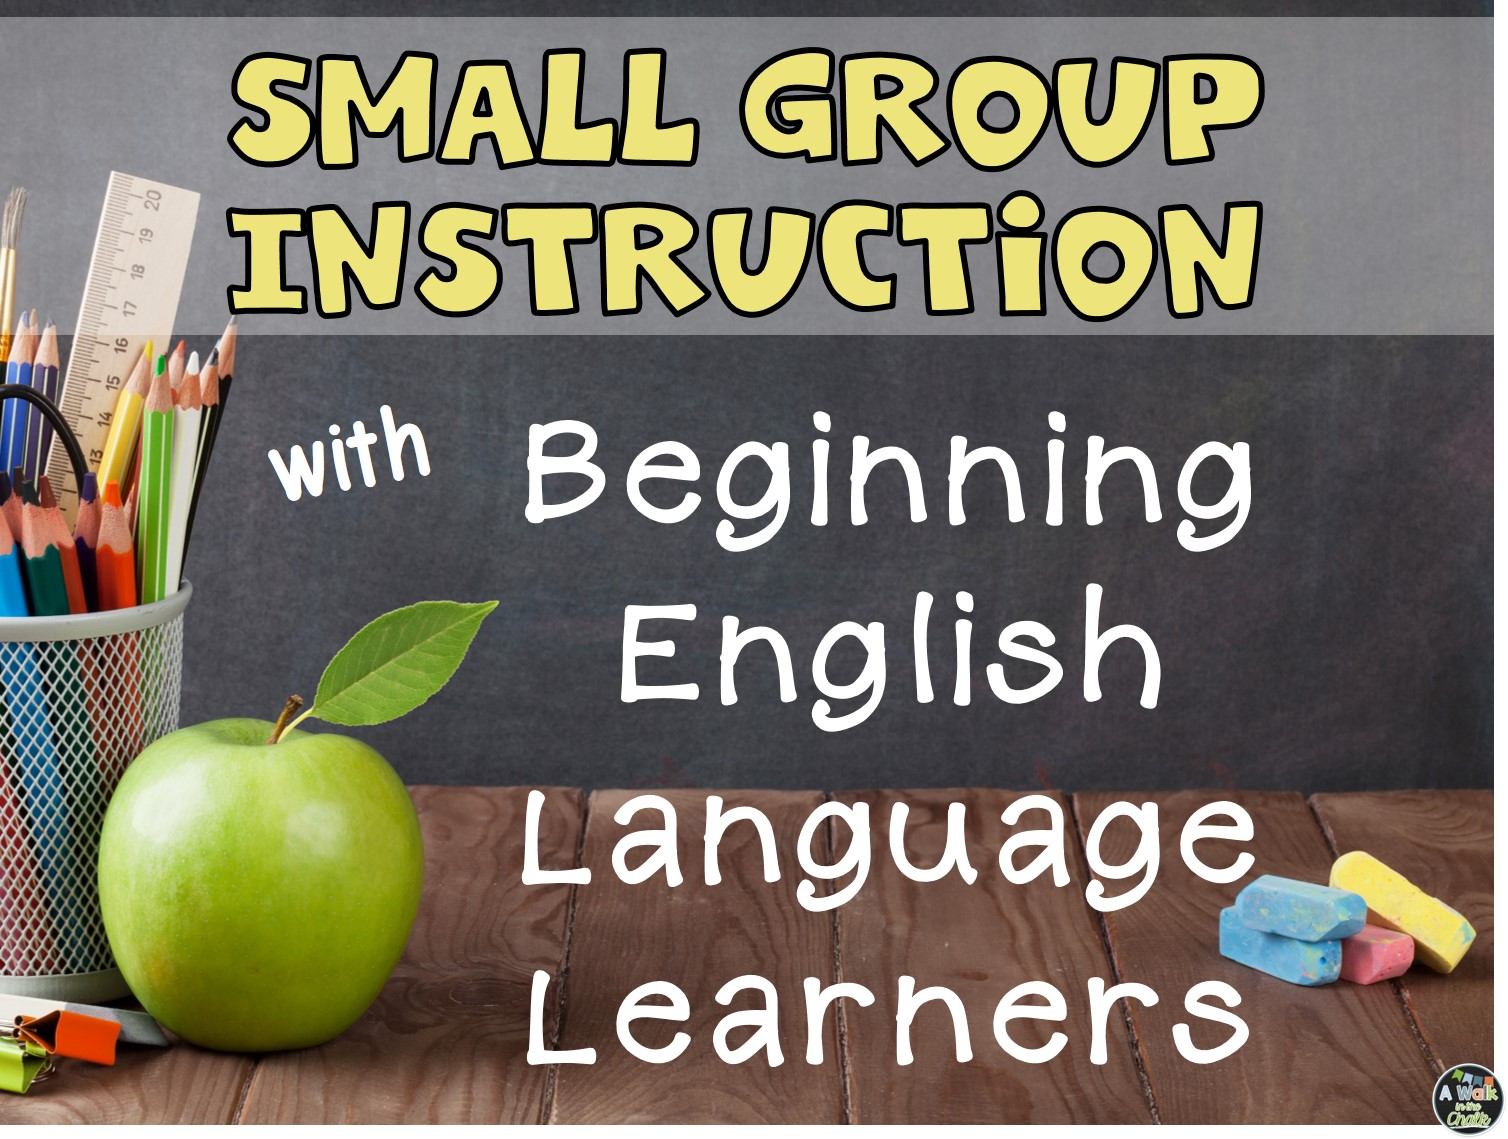 Small Group Work With Beginning English Language Learners